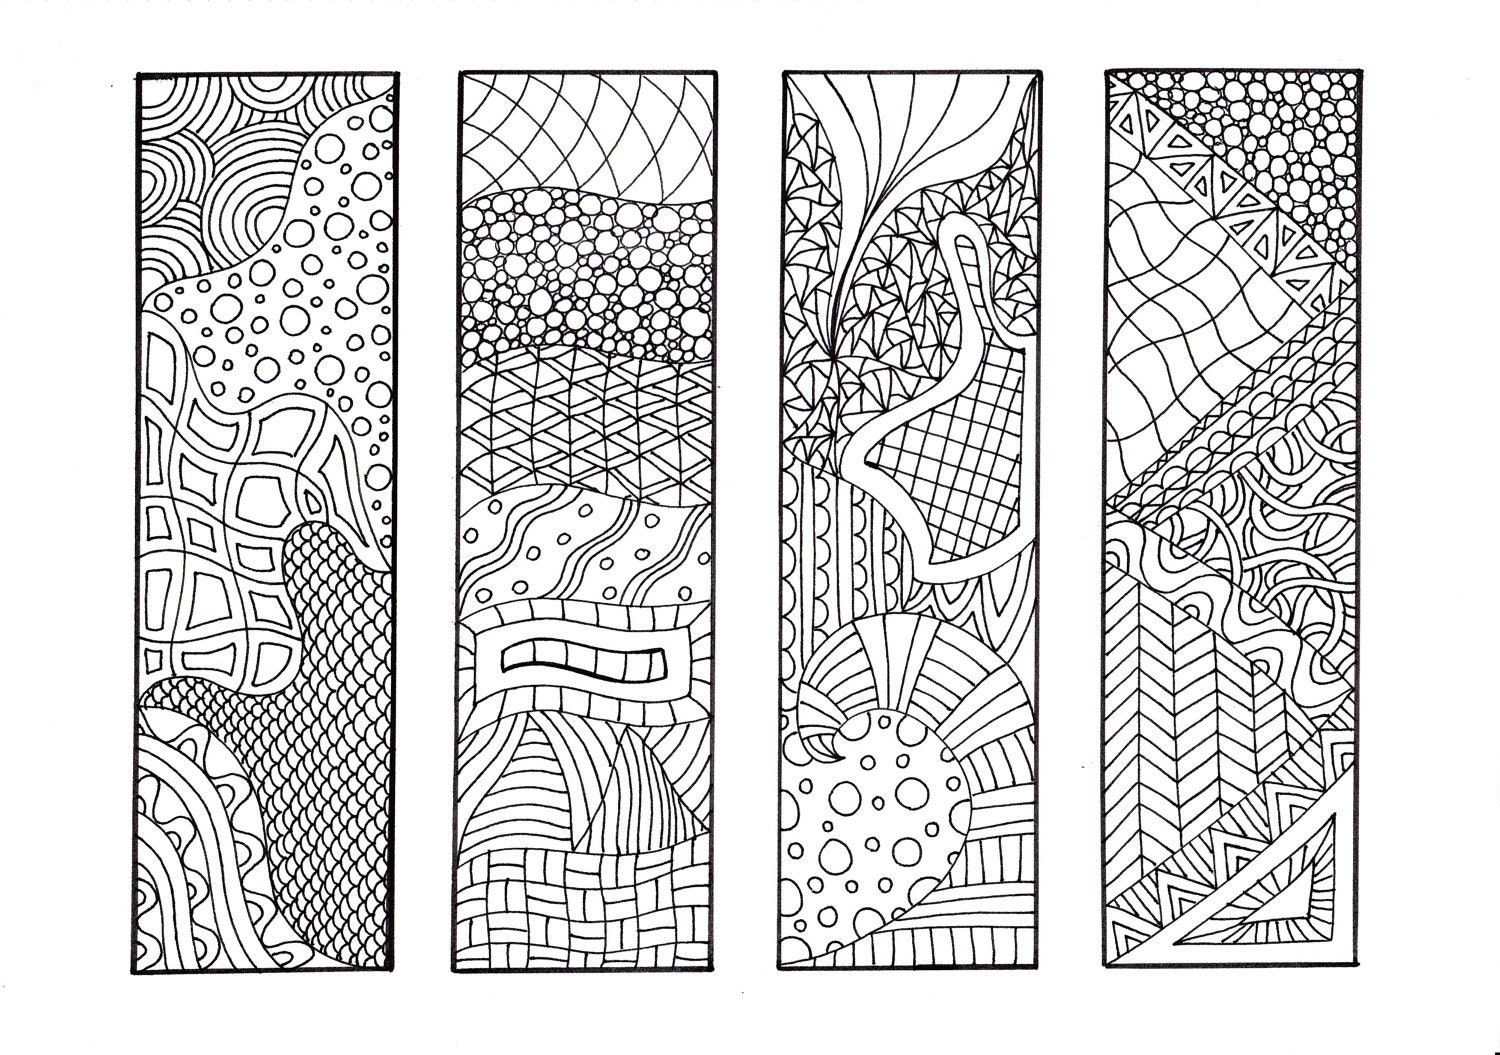 Printable Coloring Bookmarks Free : Zentangle inspired printable coloring bookmarks unique